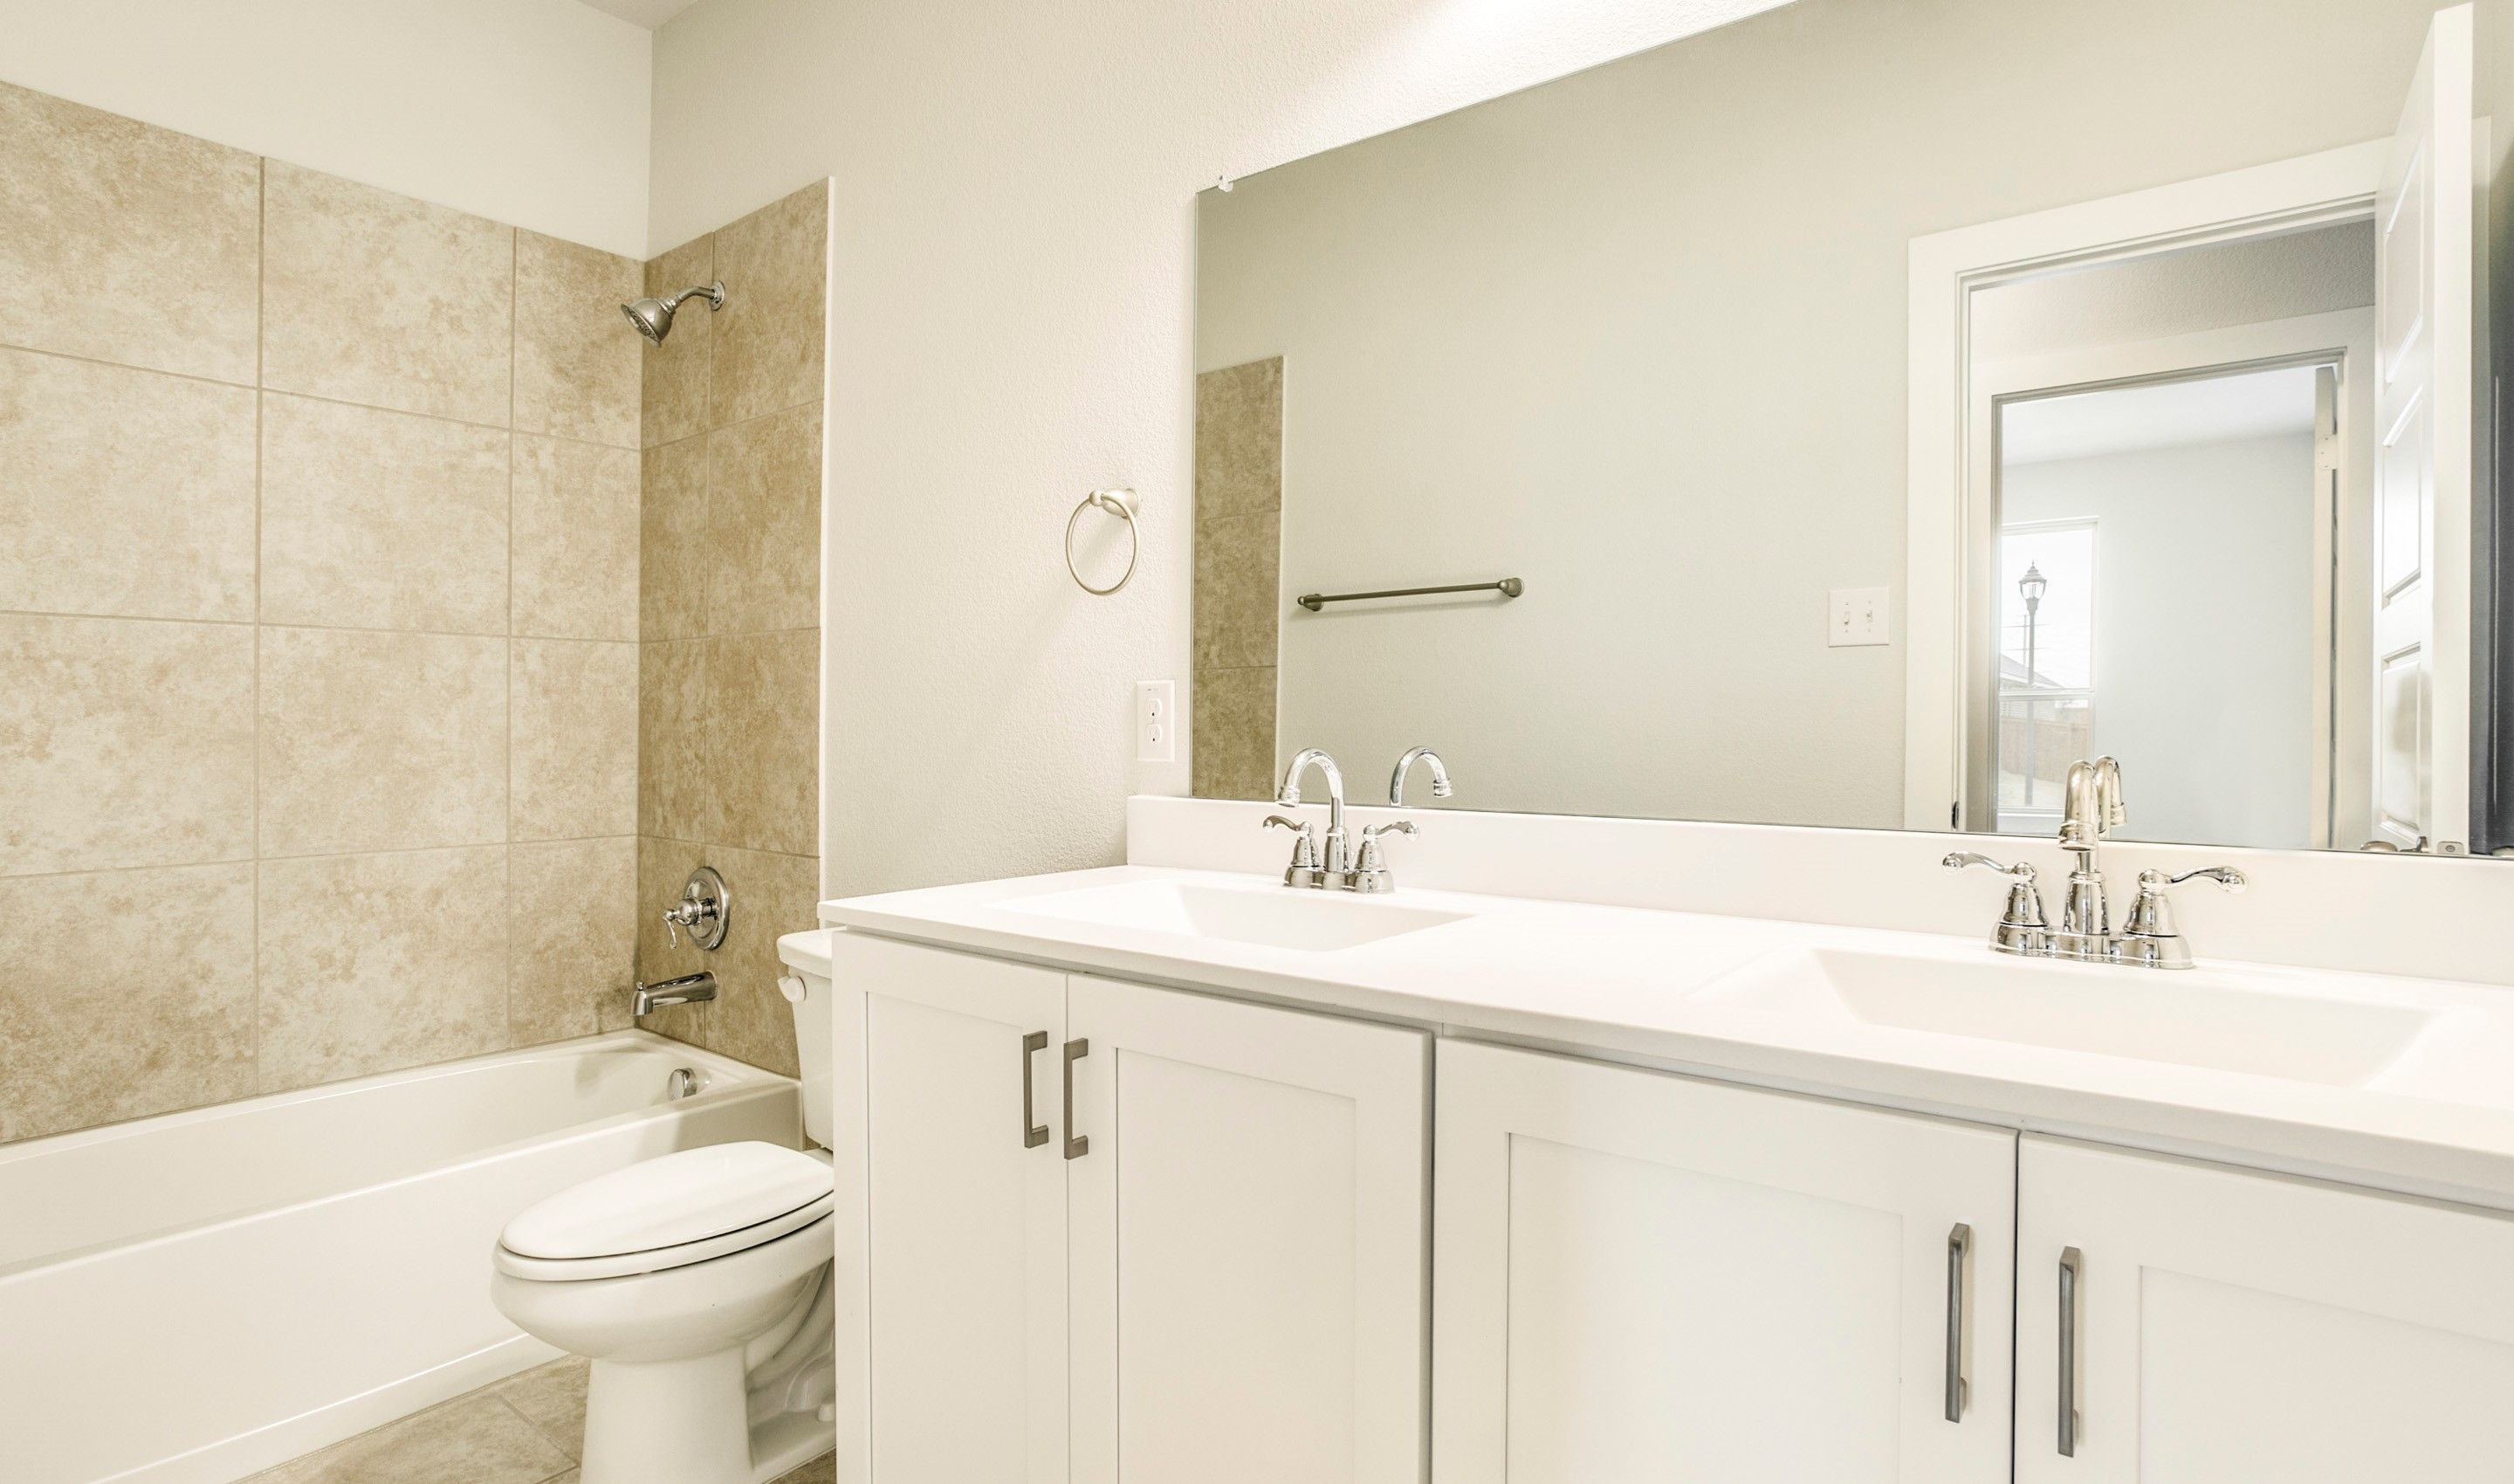 Bathroom featured in the Wedgewood II By K. Hovnanian® Homes in Dallas, TX